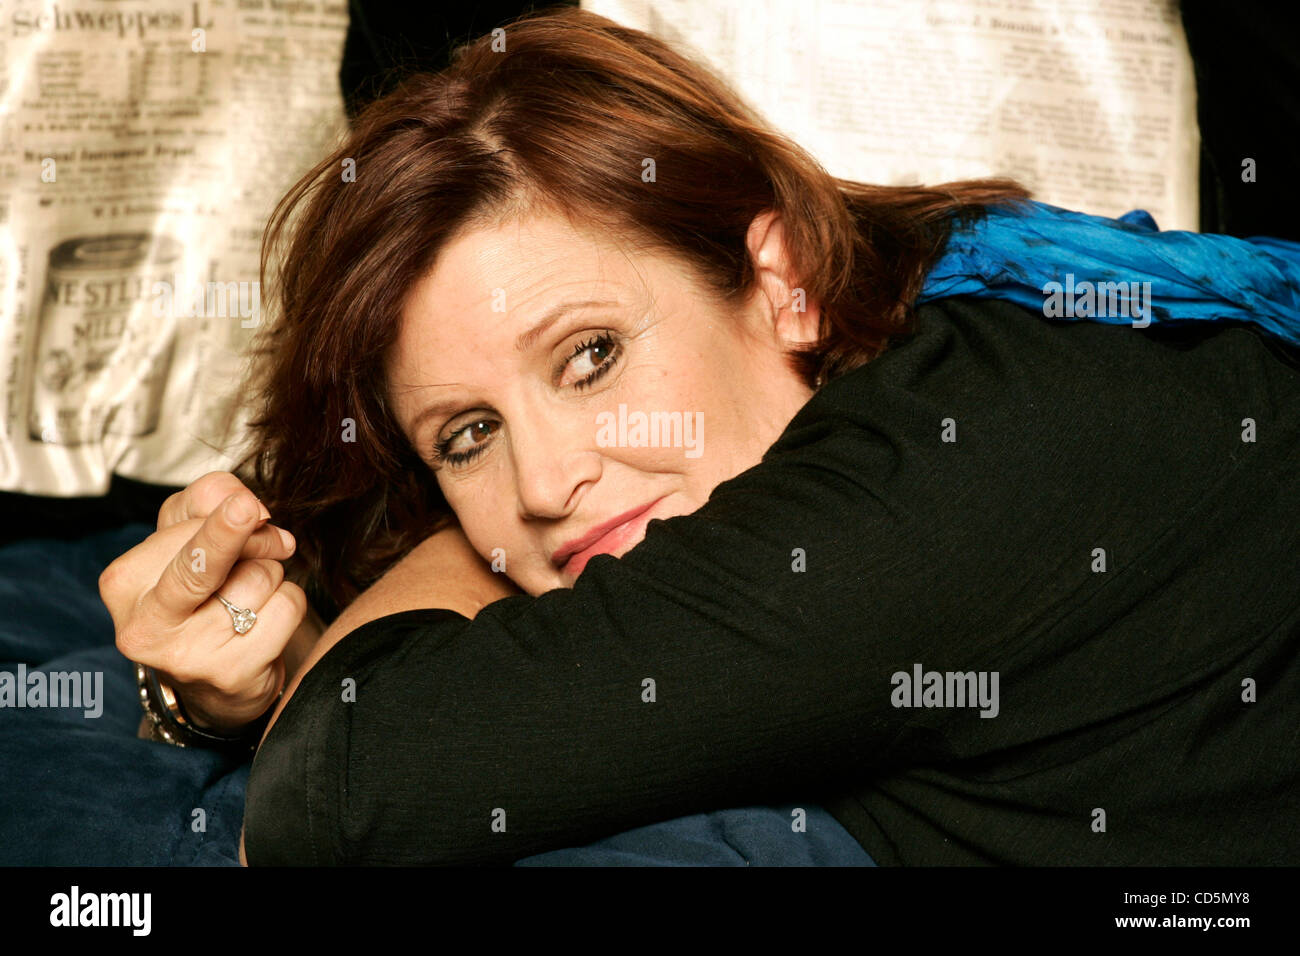 Aug 26, 2008 - Beverly Hills, California, USA - CARRIE FISHER at her home in Beverly Hills flips the middle finger. - Stock Image